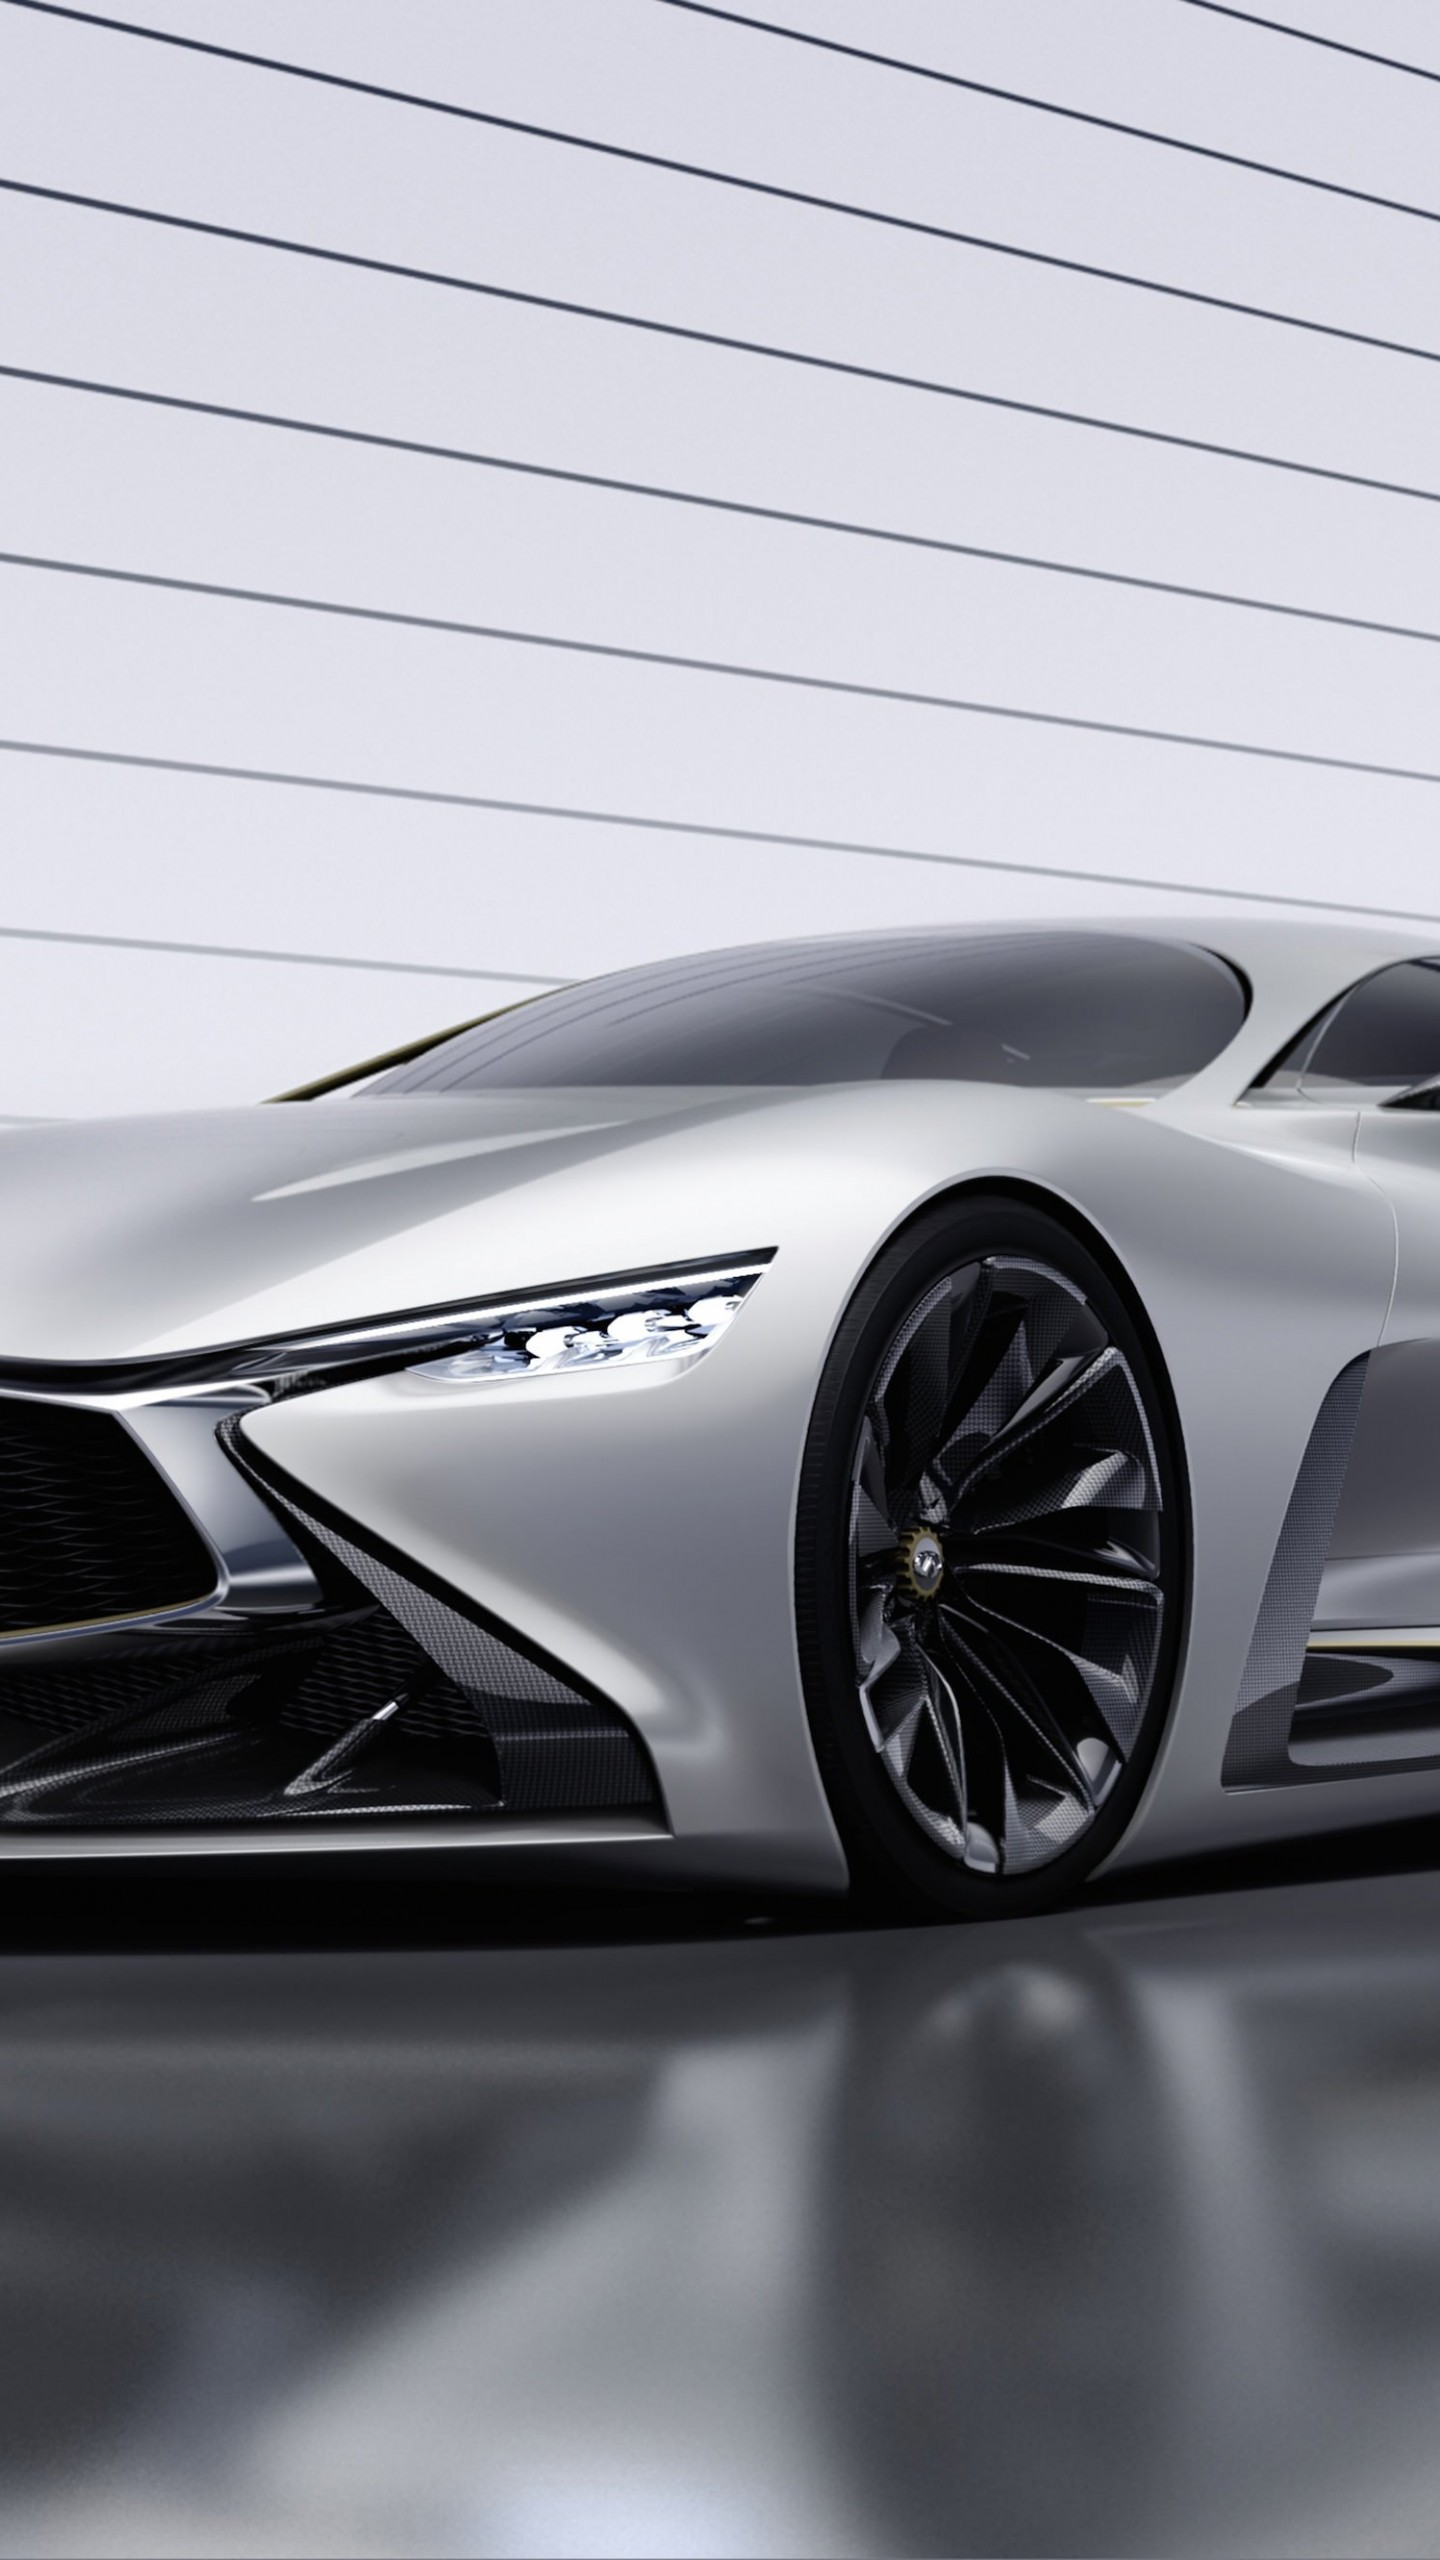 Infiniti Vision GT Concept Wallpaper for LG G3